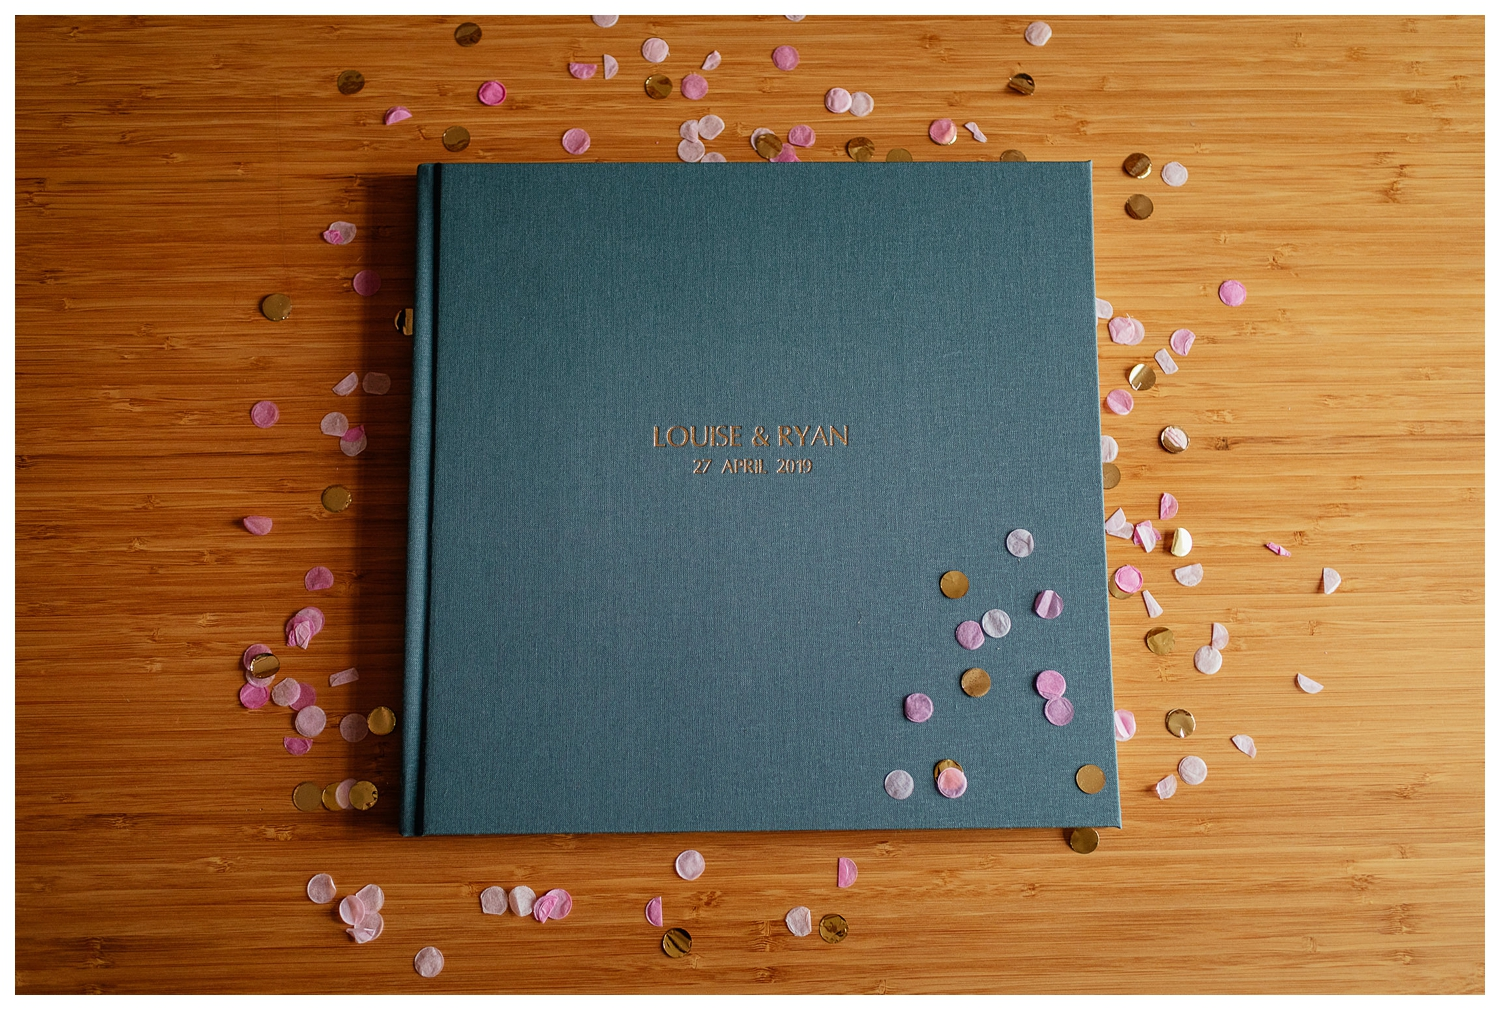 lay flat coffee table wedding album photo book linen cover example by Fotomaki Photography